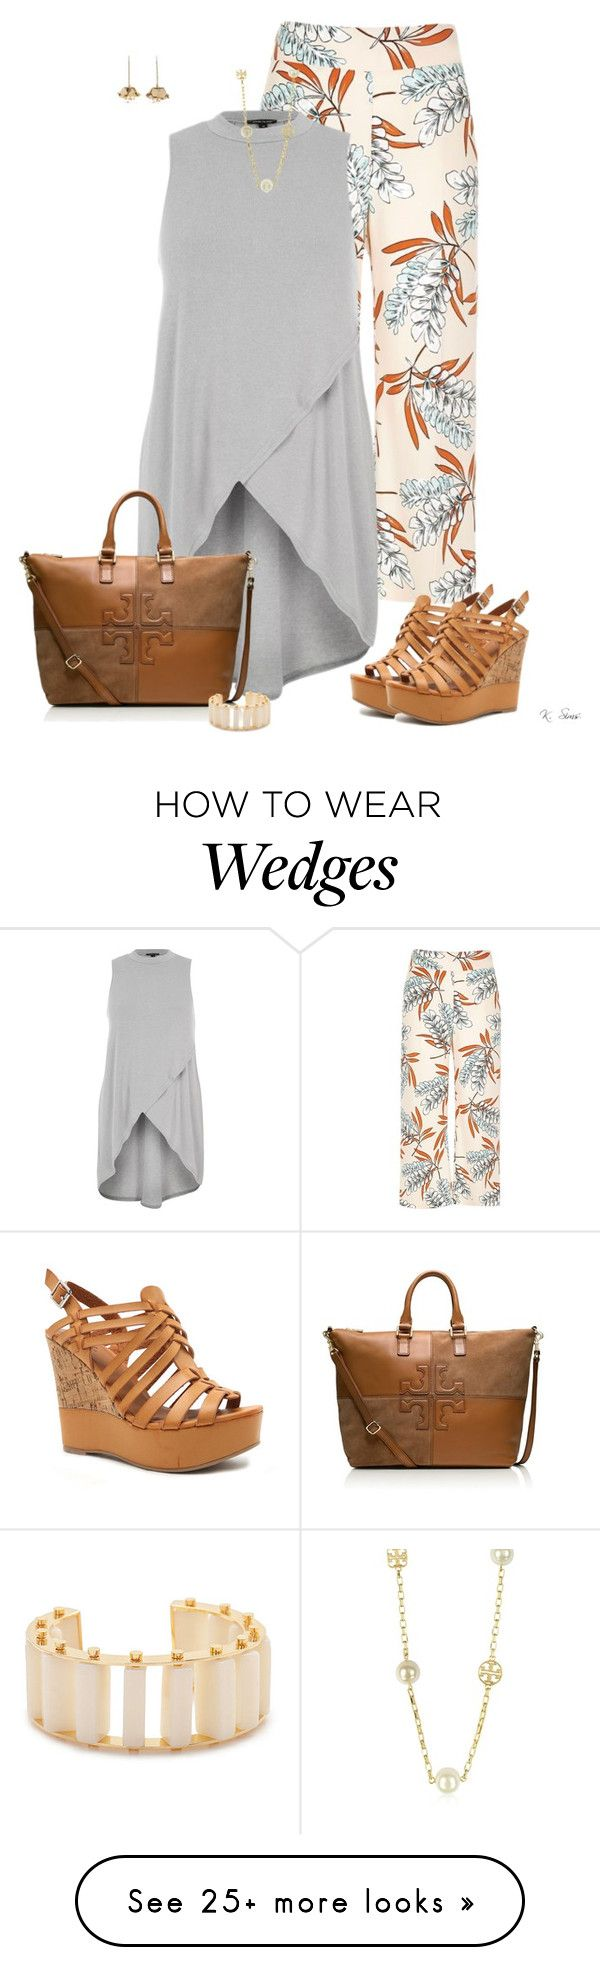 """More Cute Pants"" by ksims-1 on Polyvore featuring River Island, Qupid, Tory Burch, Lele Sadoughi and Aurélie Bidermann"